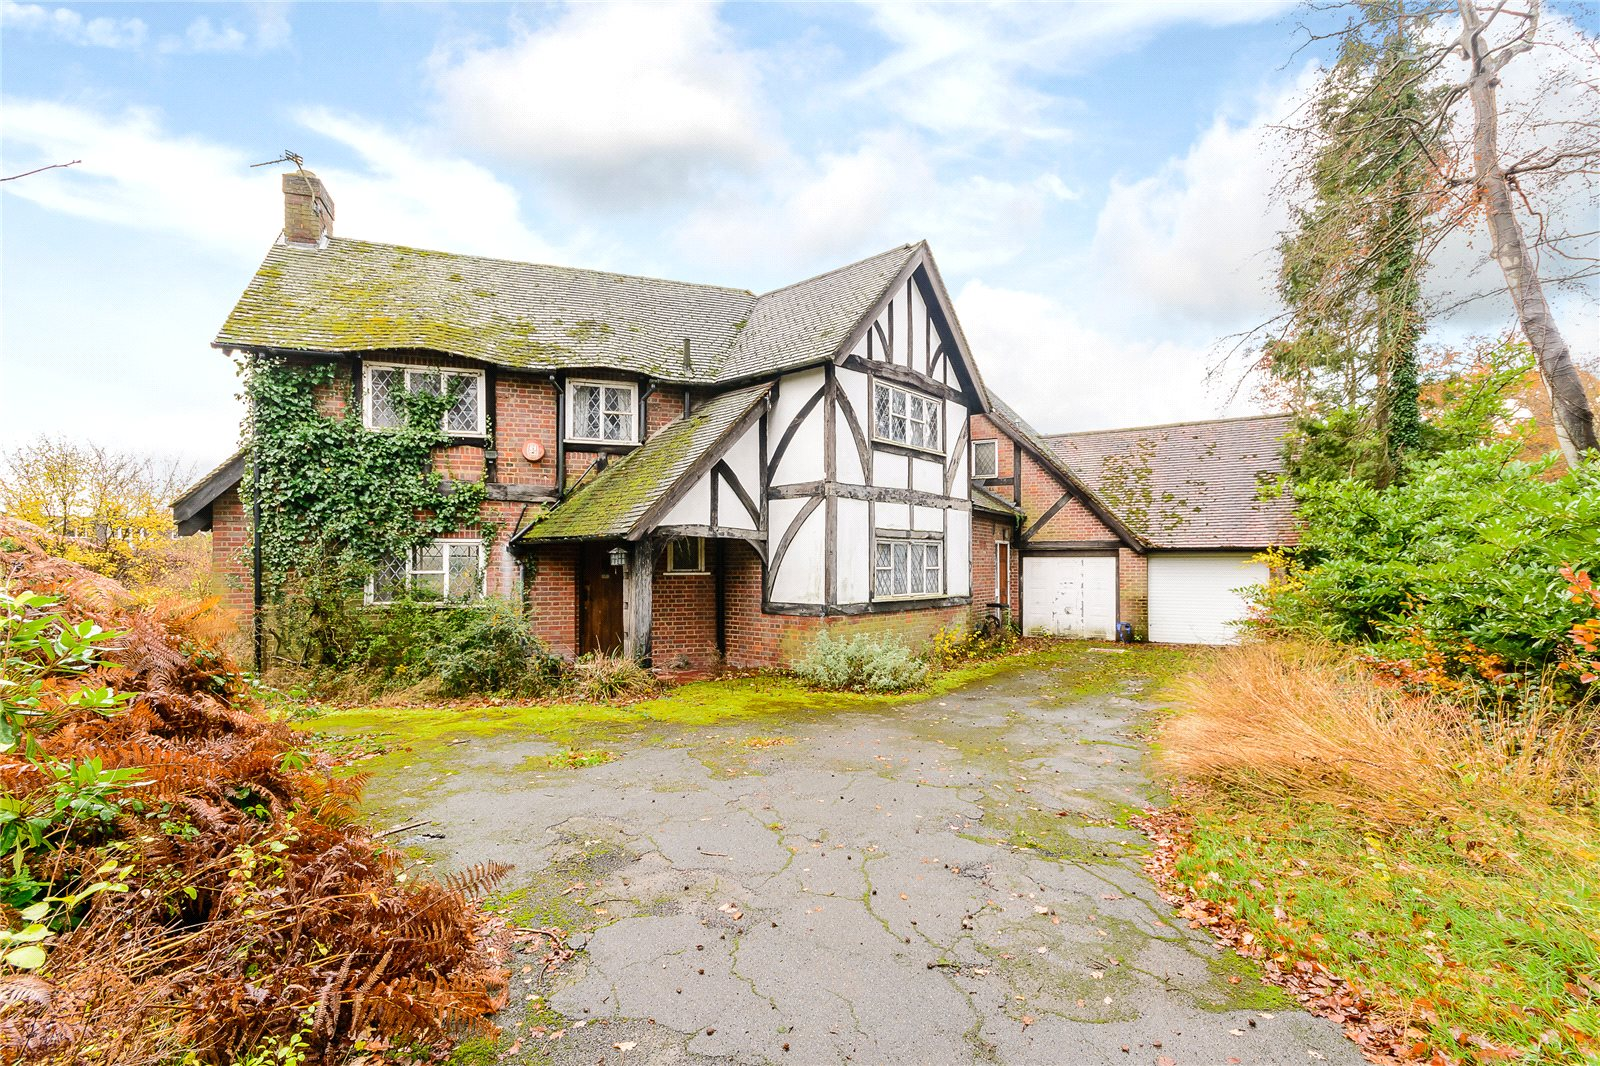 Casa Unifamiliar por un Venta en Collinswood Road, Farnham Common, Buckinghamshire, SL2 Farnham Common, Inglaterra